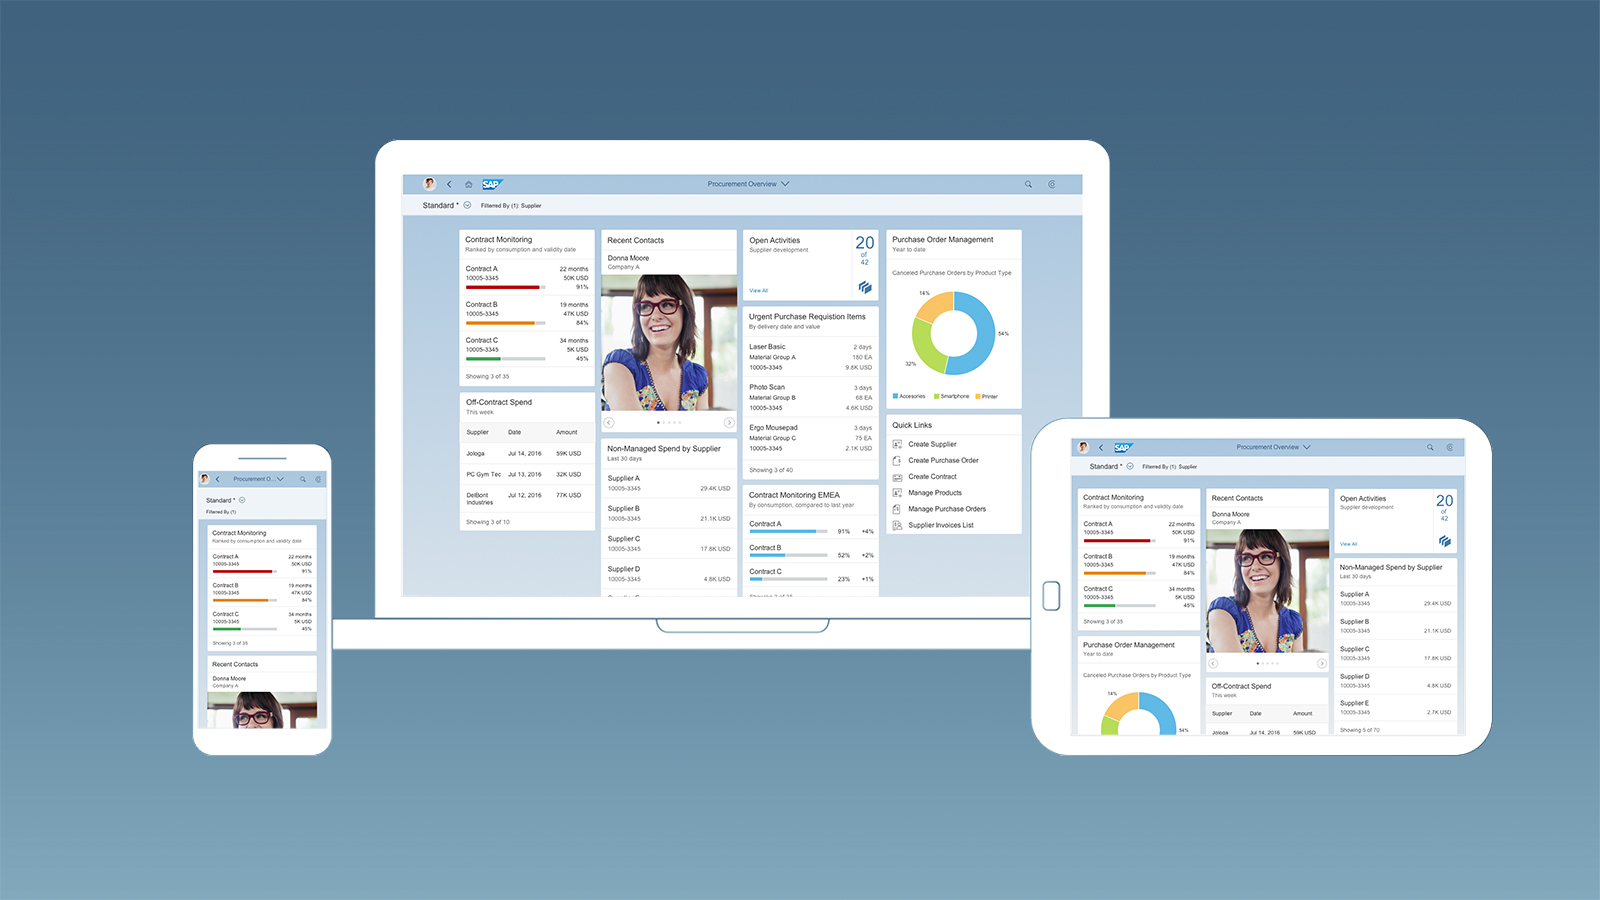 Simlified user experience with SAP Fiora set of tools